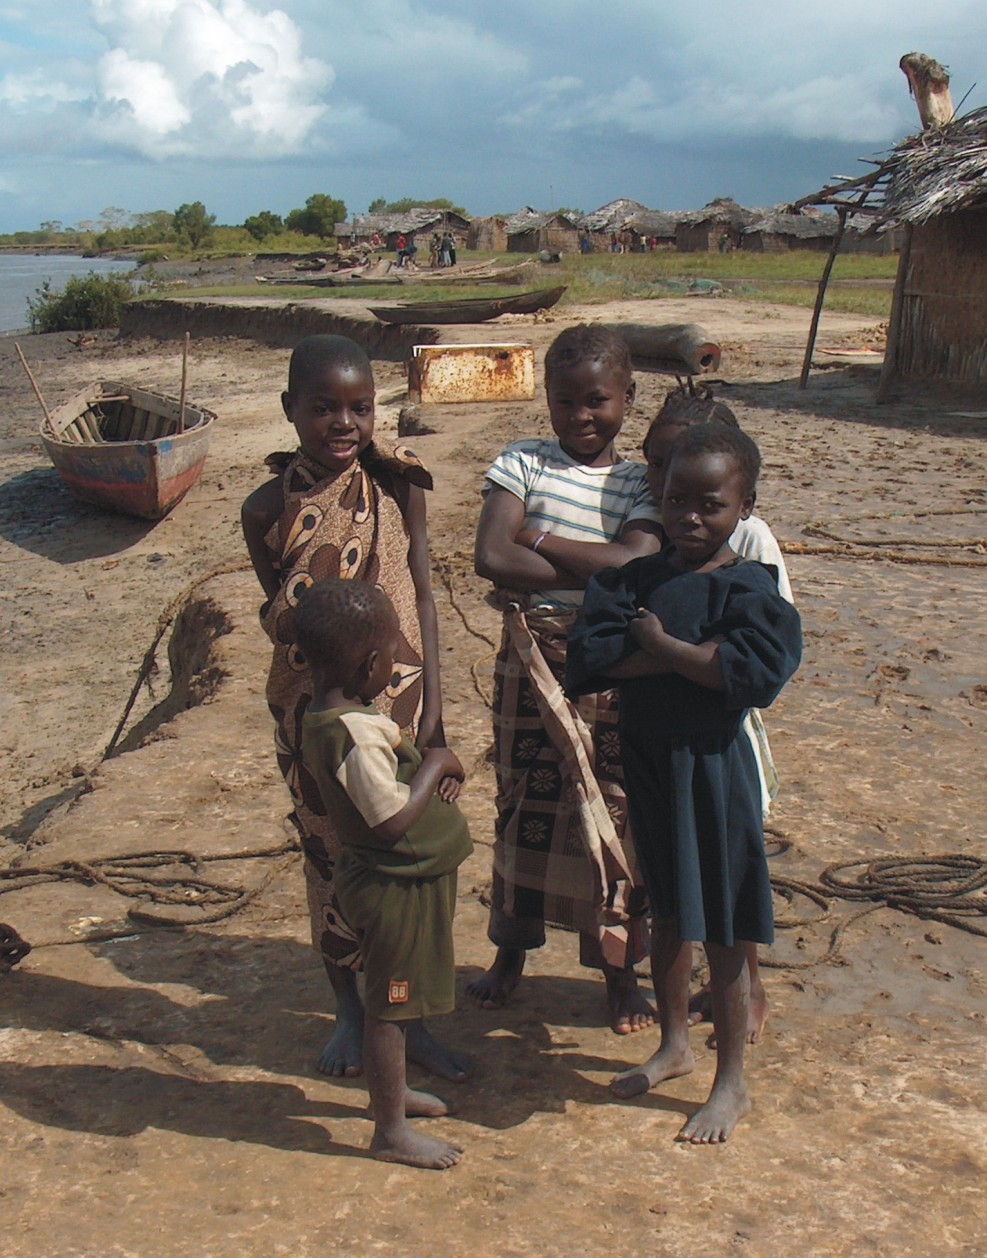 Kids from a Mozambican fishing village near Quelimane